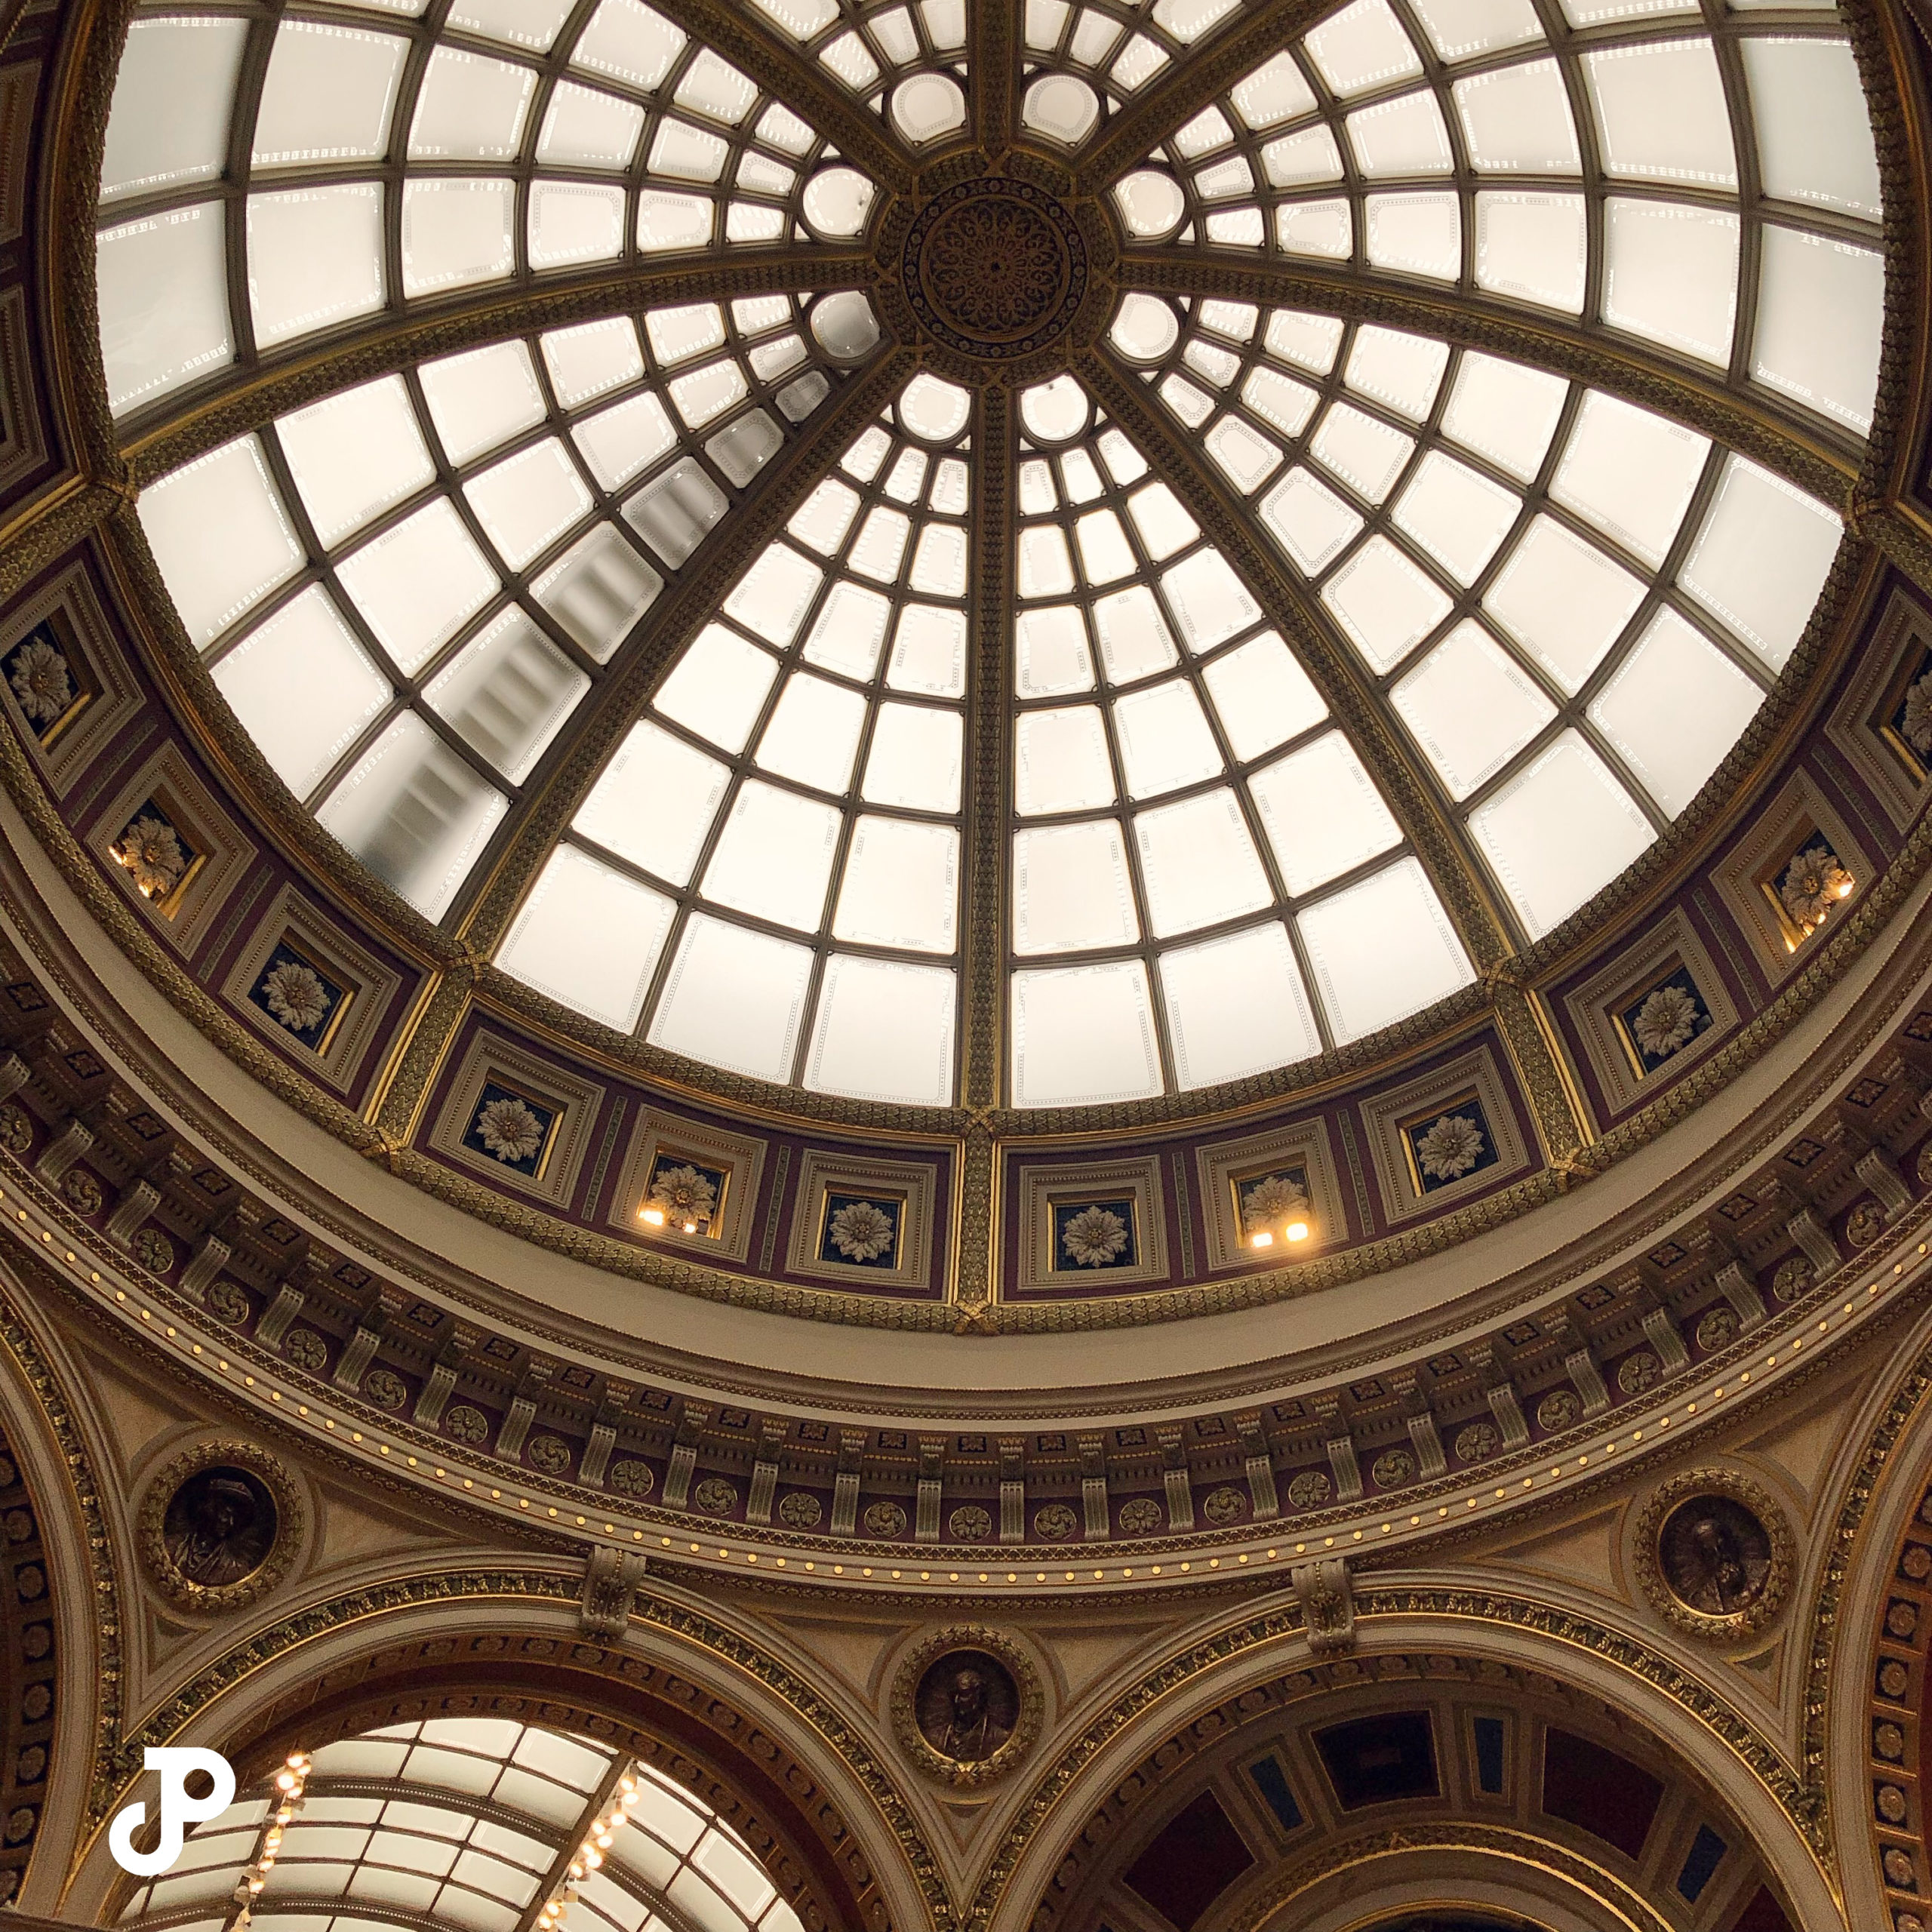 a view from below an ornate circular dome in the National Gallery in London